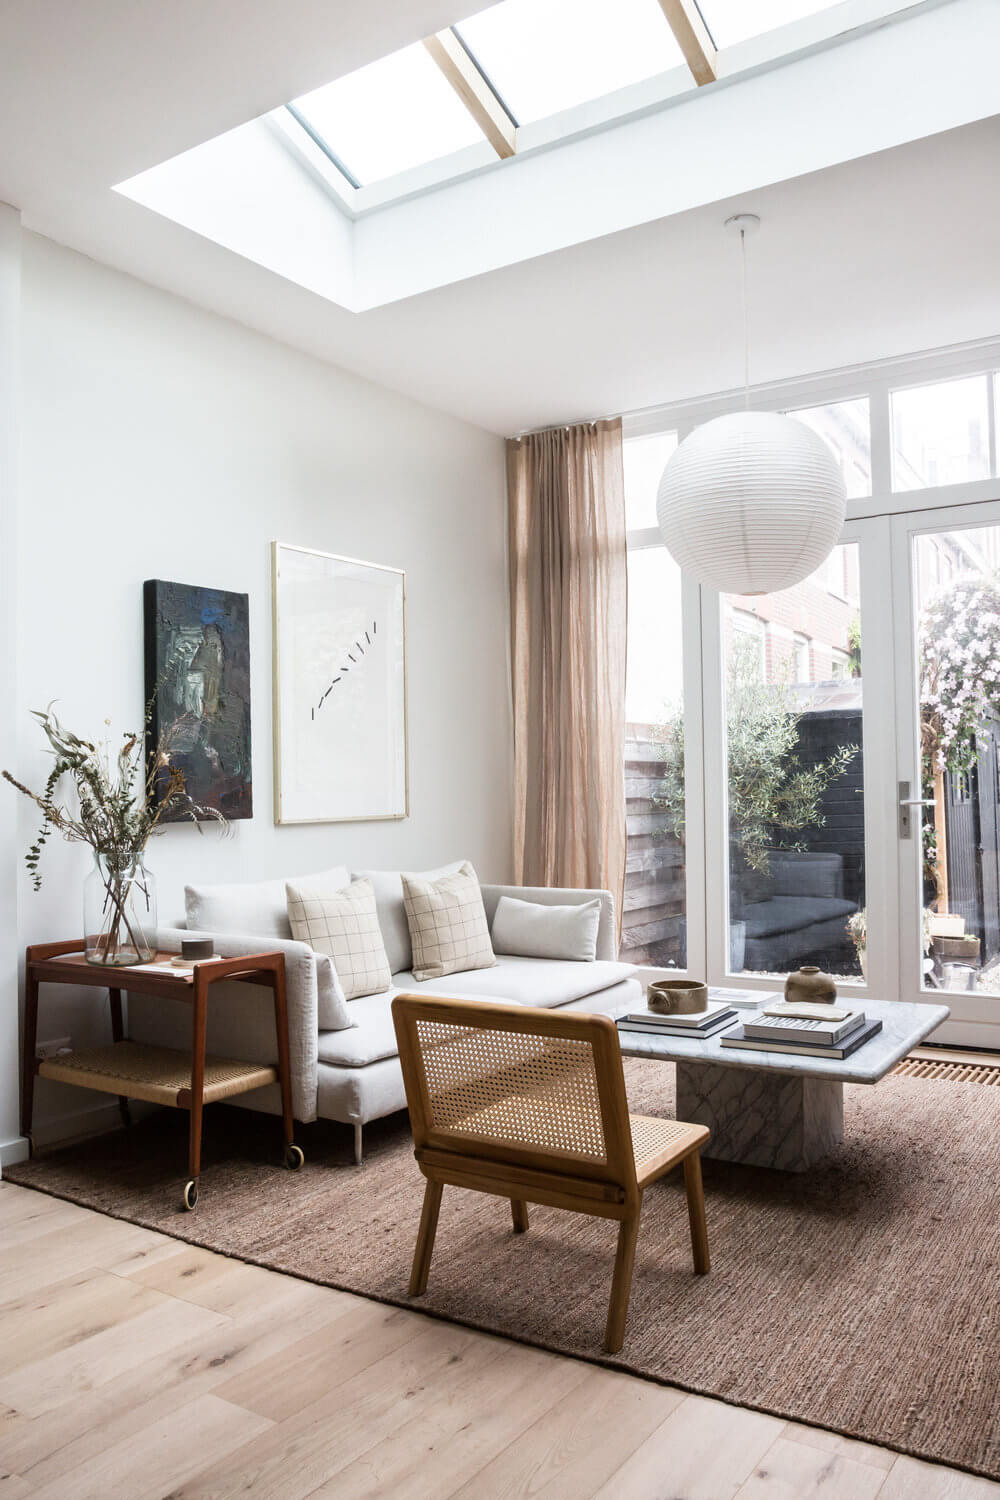 Holly Marder's Light-Filled Serene Home in The Netherlands